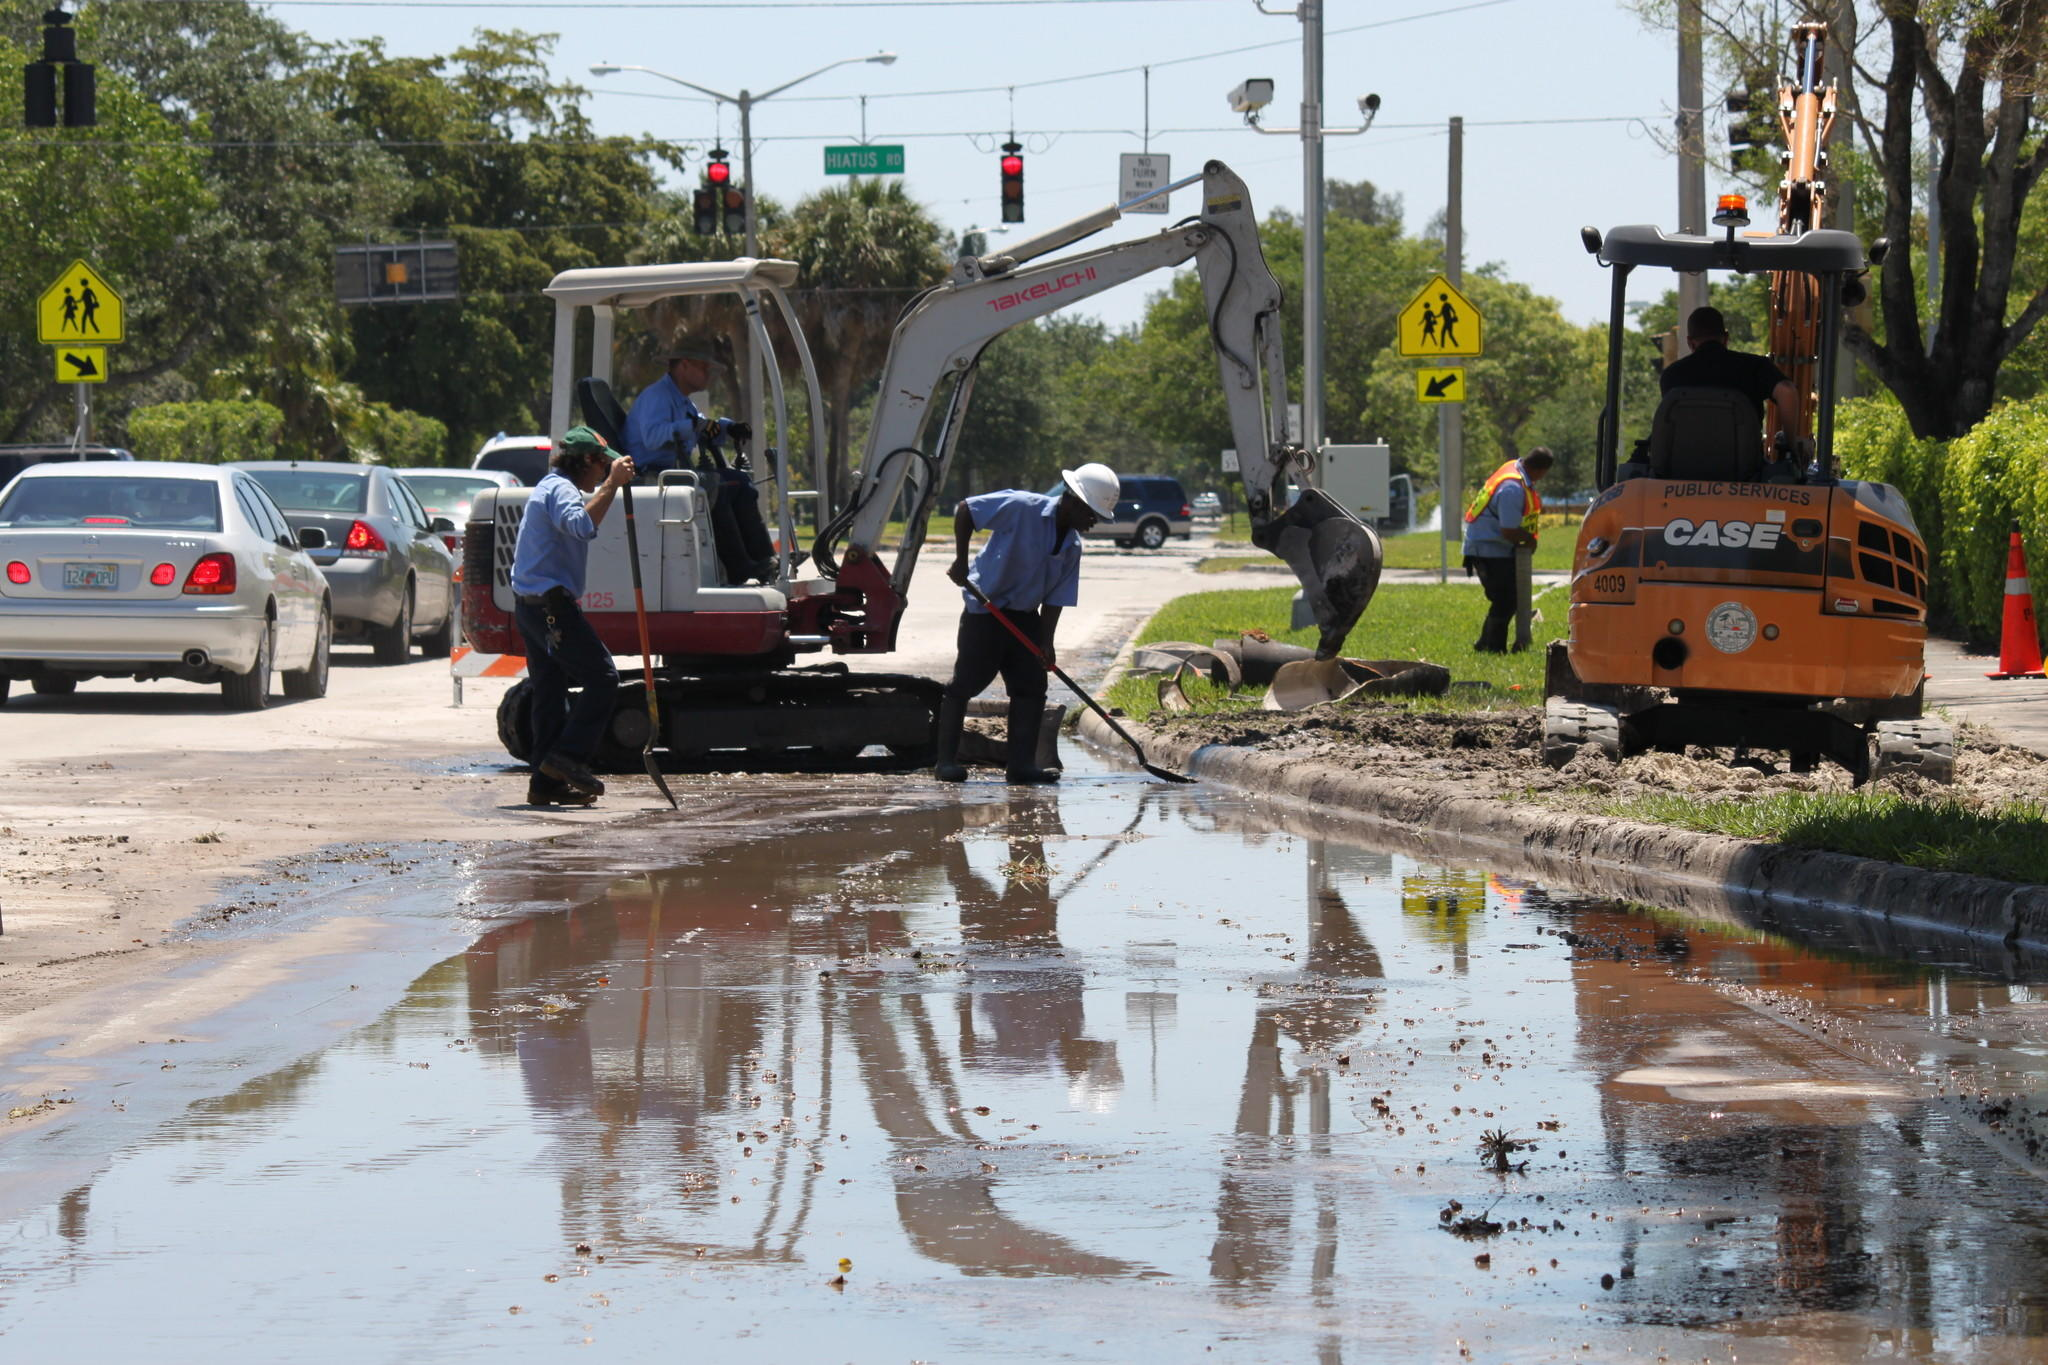 Crews from Pembroke Pines' utilities department clean up the mess after a 12-inch water main ruptured Sunday, flooding parts of the intersection at Taft Street and Hiatus Road. Water pressure dropped after the 7 am break, but service to area homes and businesses not interrupted, said utilities supervisor Steve Stanton. All lanes reopened by about 1 p.m.